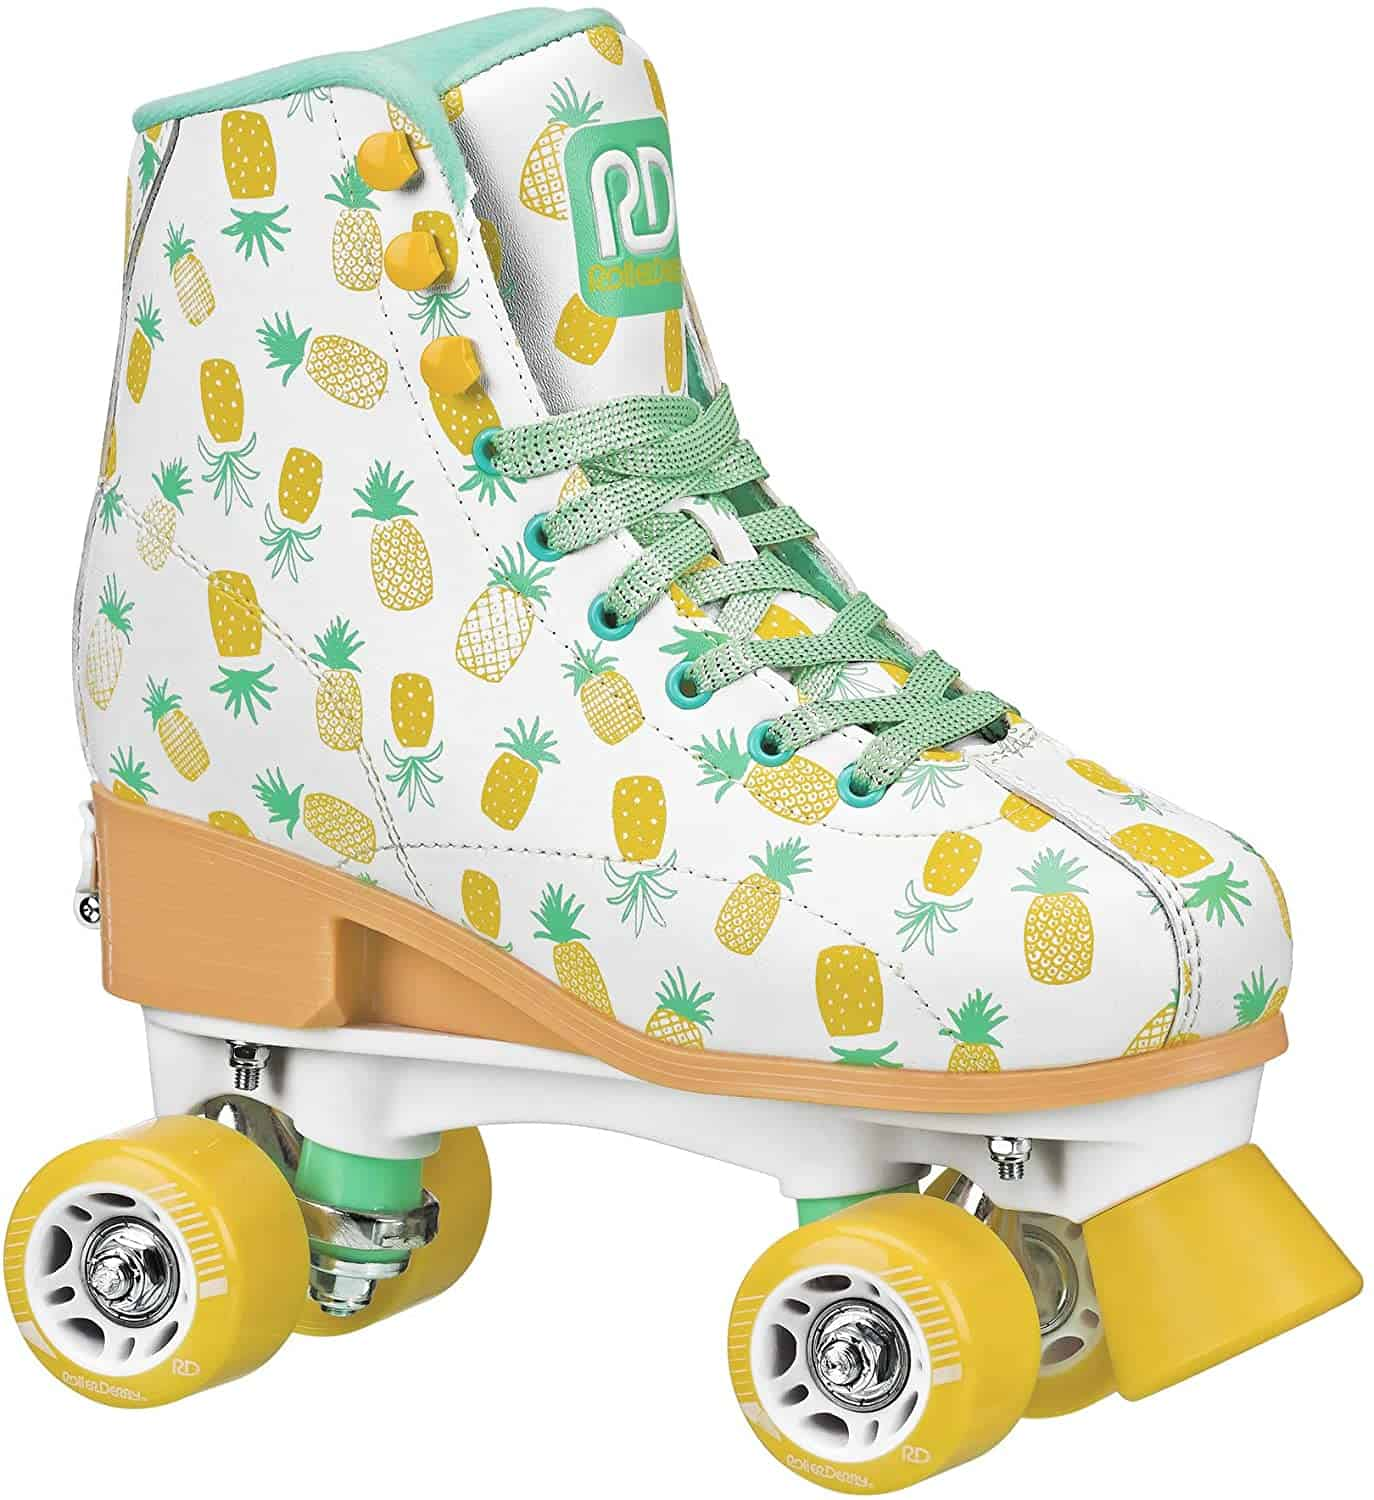 Girls Roller Skates with pineapple prints